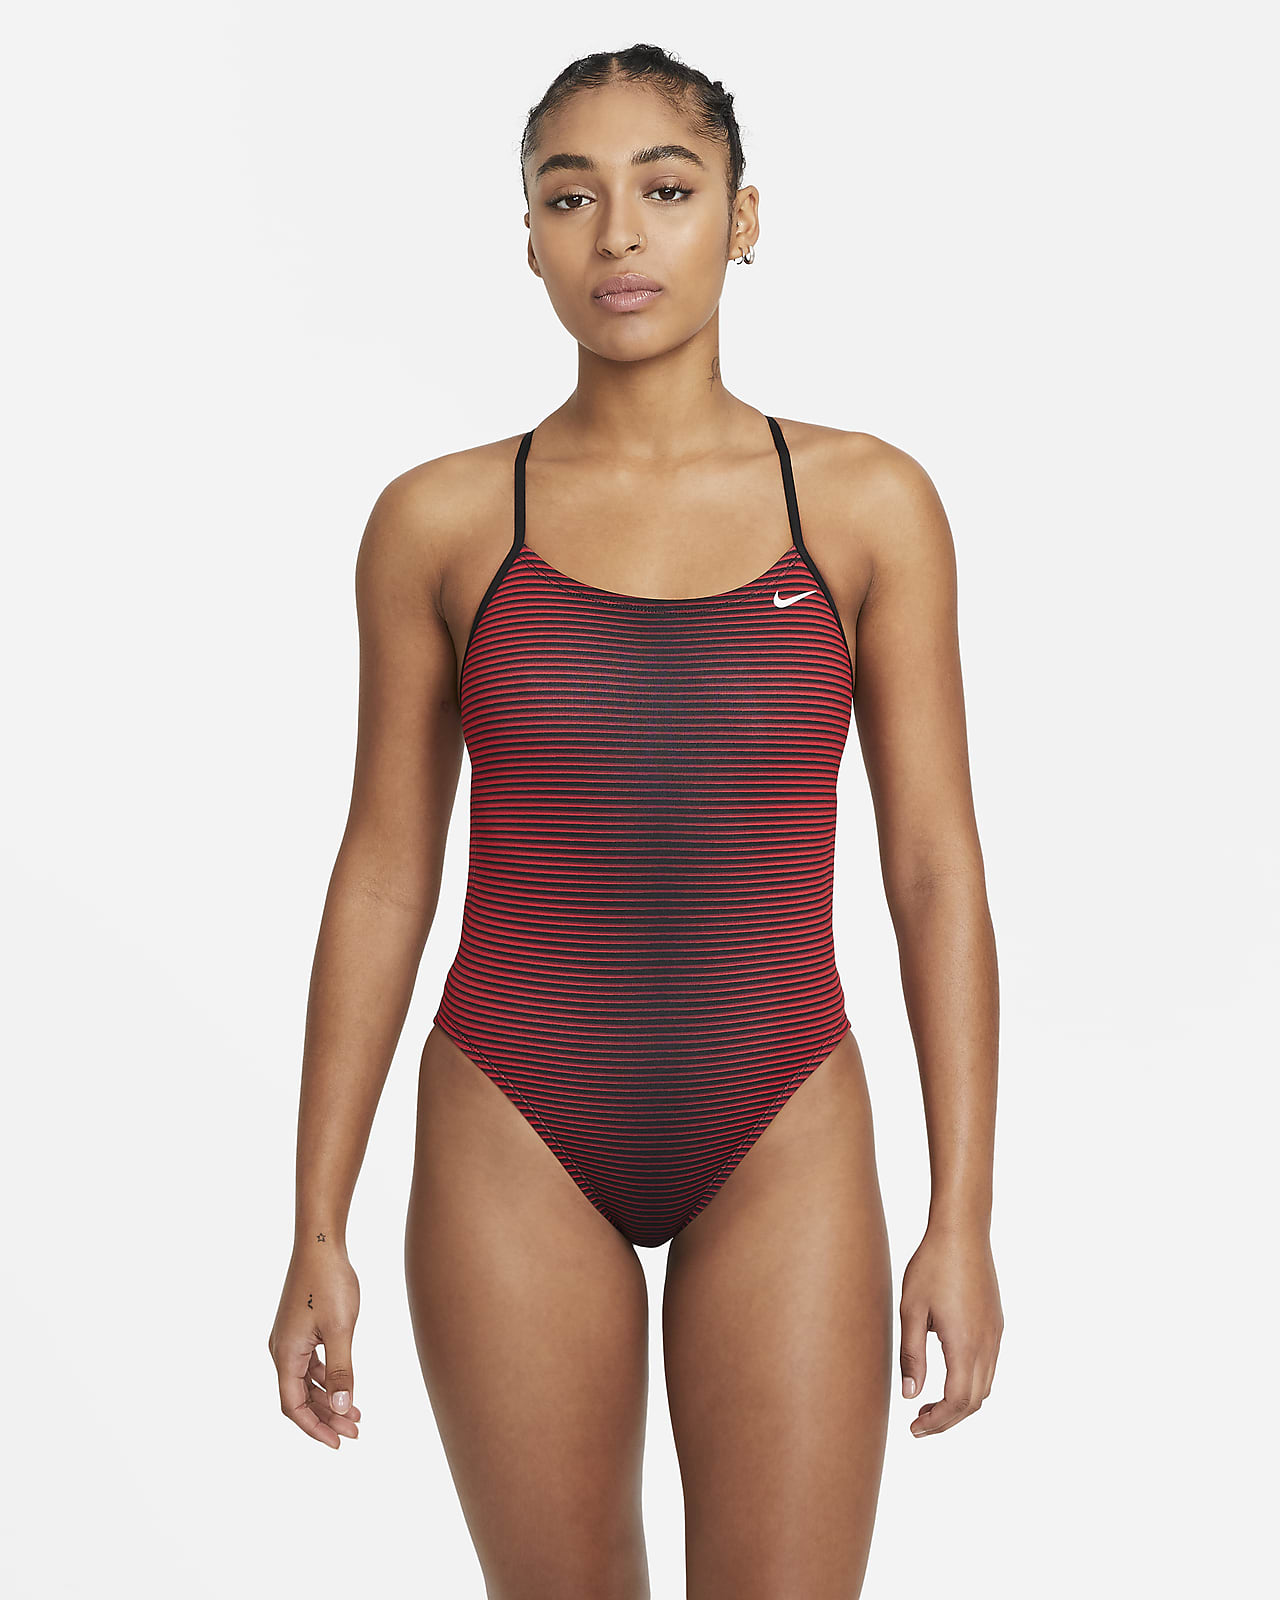 Nike HydraStrong Charge Women's 1-Piece Swimsuit